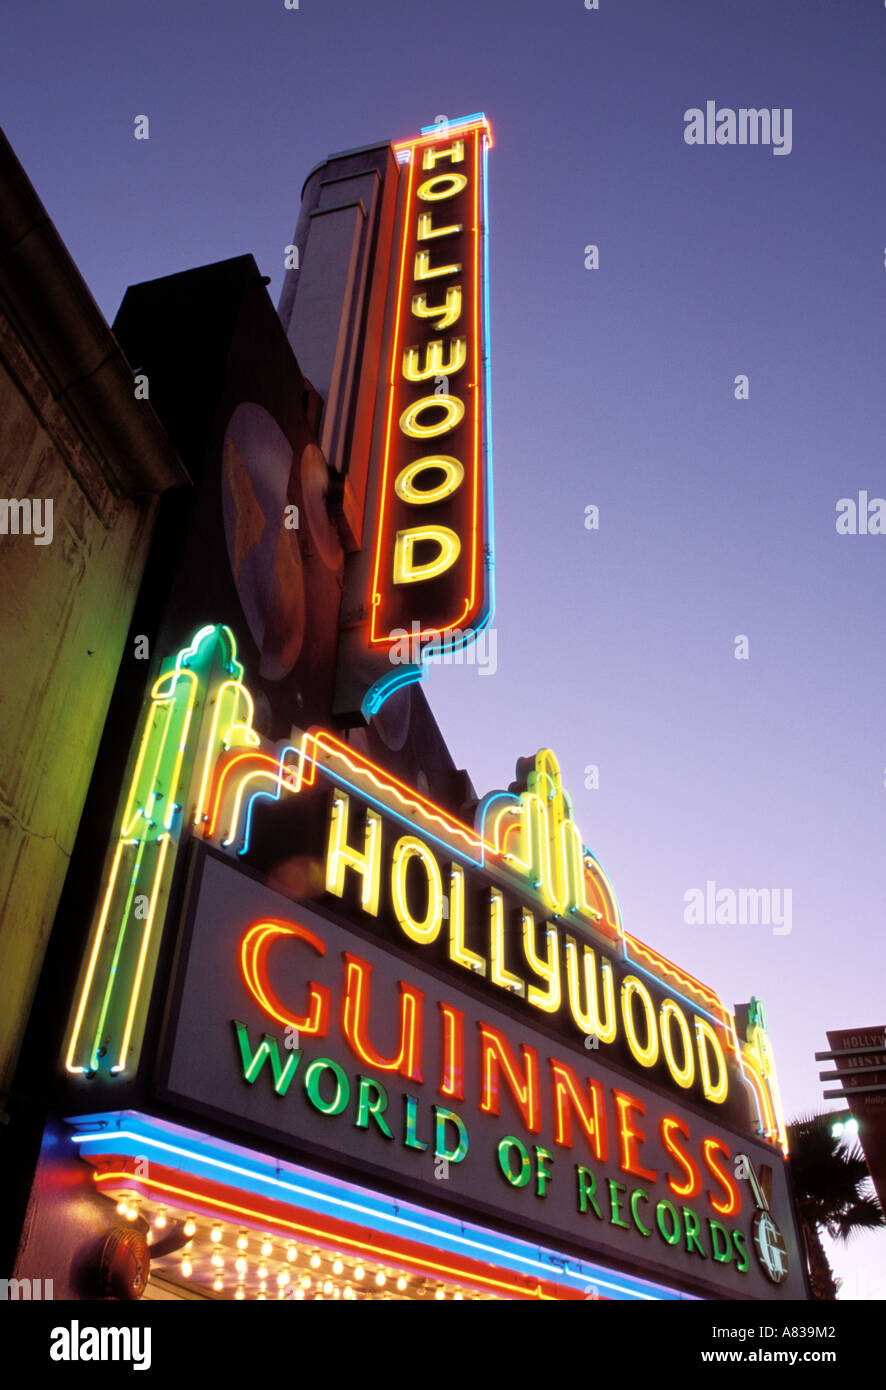 Hollywood Guinness World of Records Hollywood Blvd Los Angeles County California United States of America - Stock Image